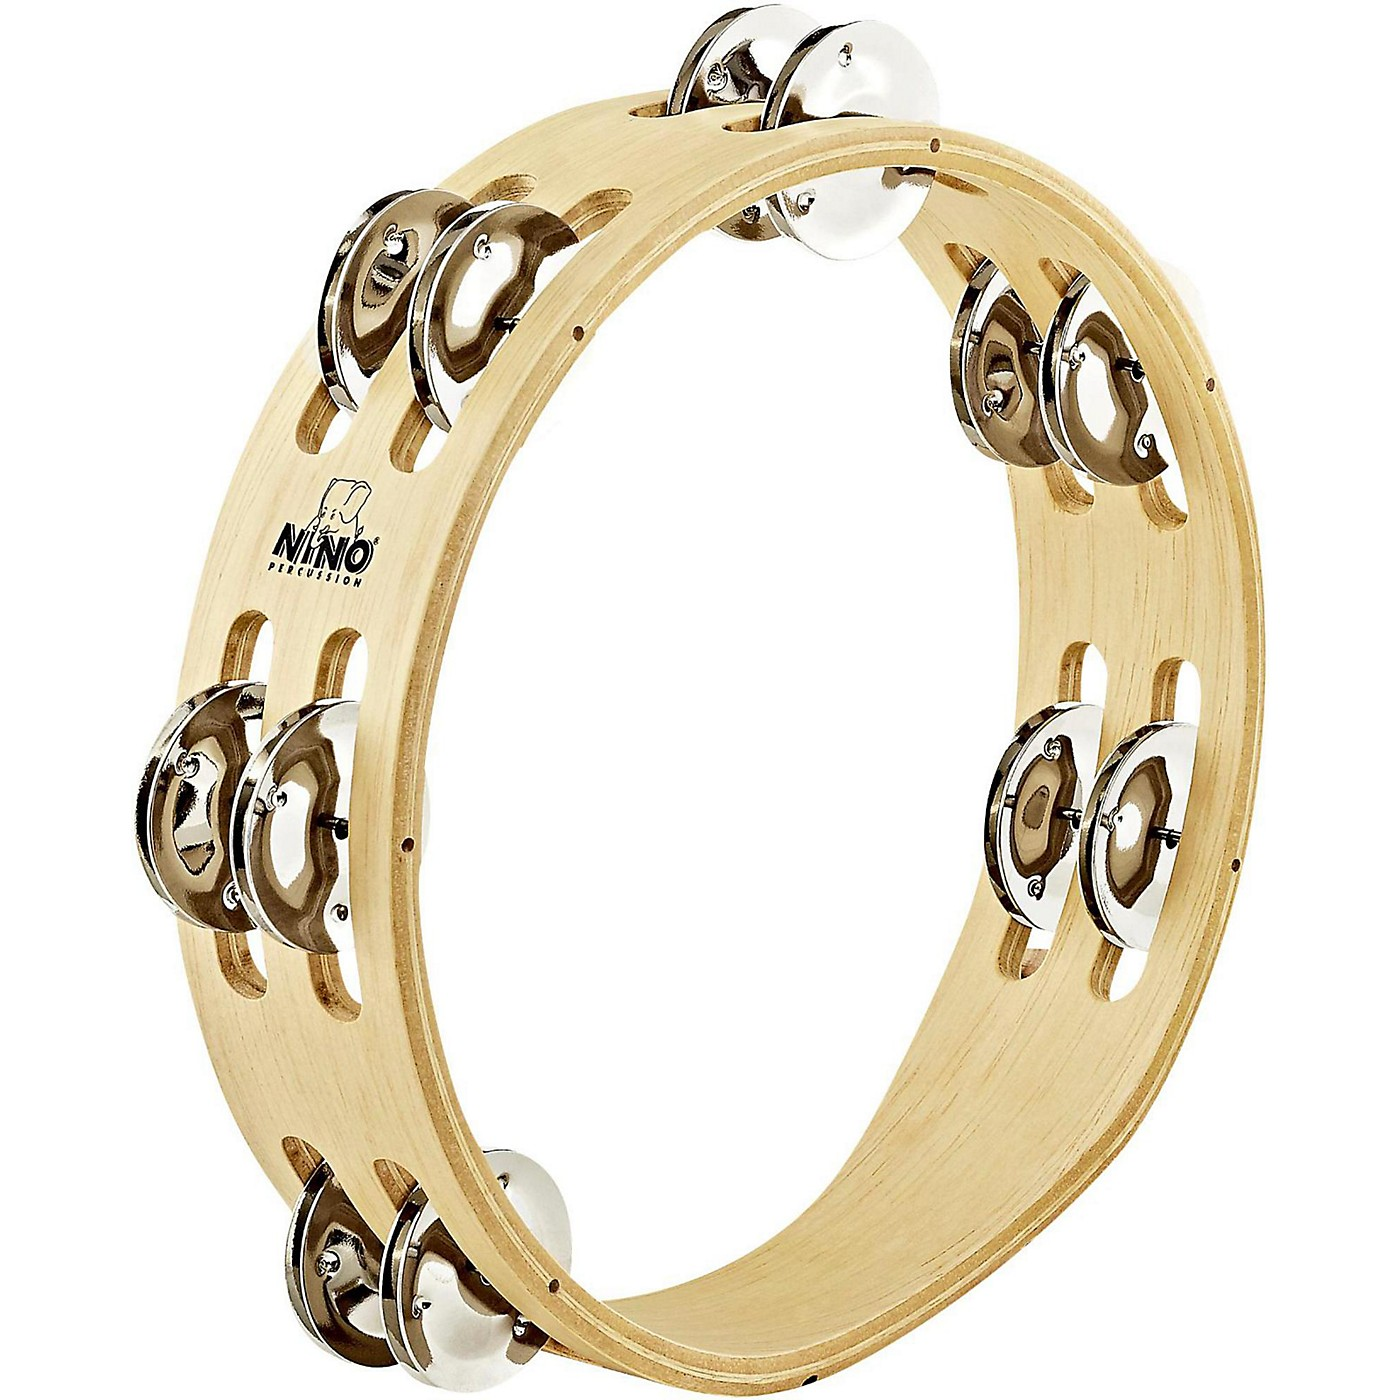 Nino Compact Wood Tambourine with Double Row Nickel Silver Plated Steel Jingles thumbnail